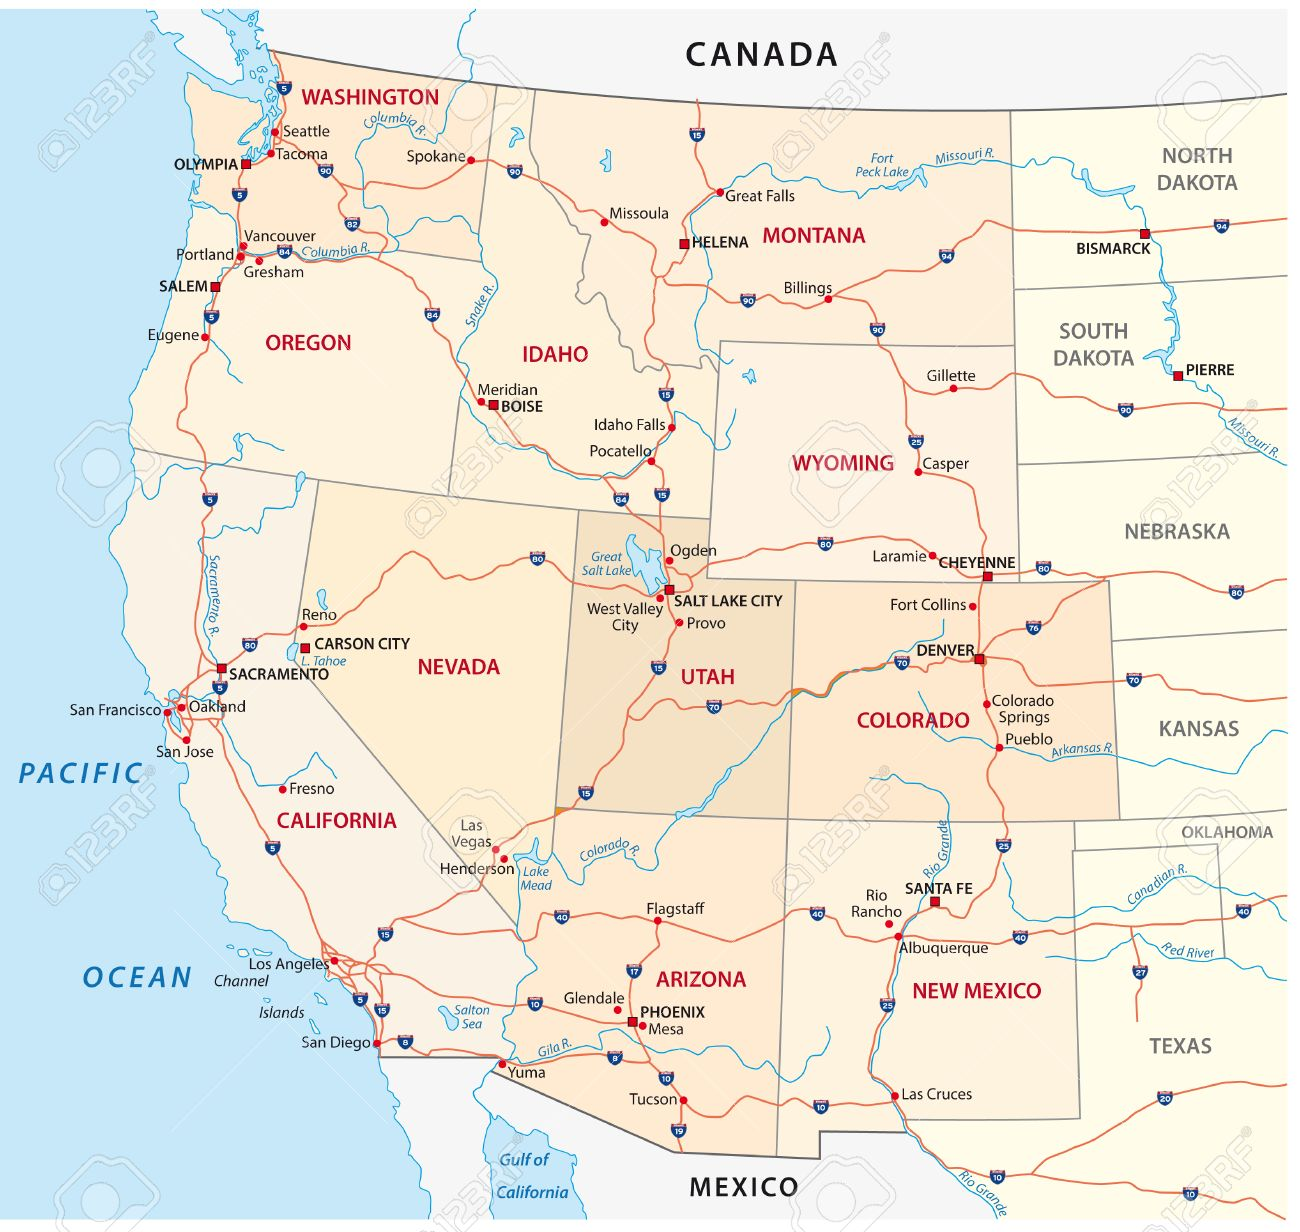 Western United States Map Royalty Free Cliparts Vectors And - Map of nevada and arizona usa